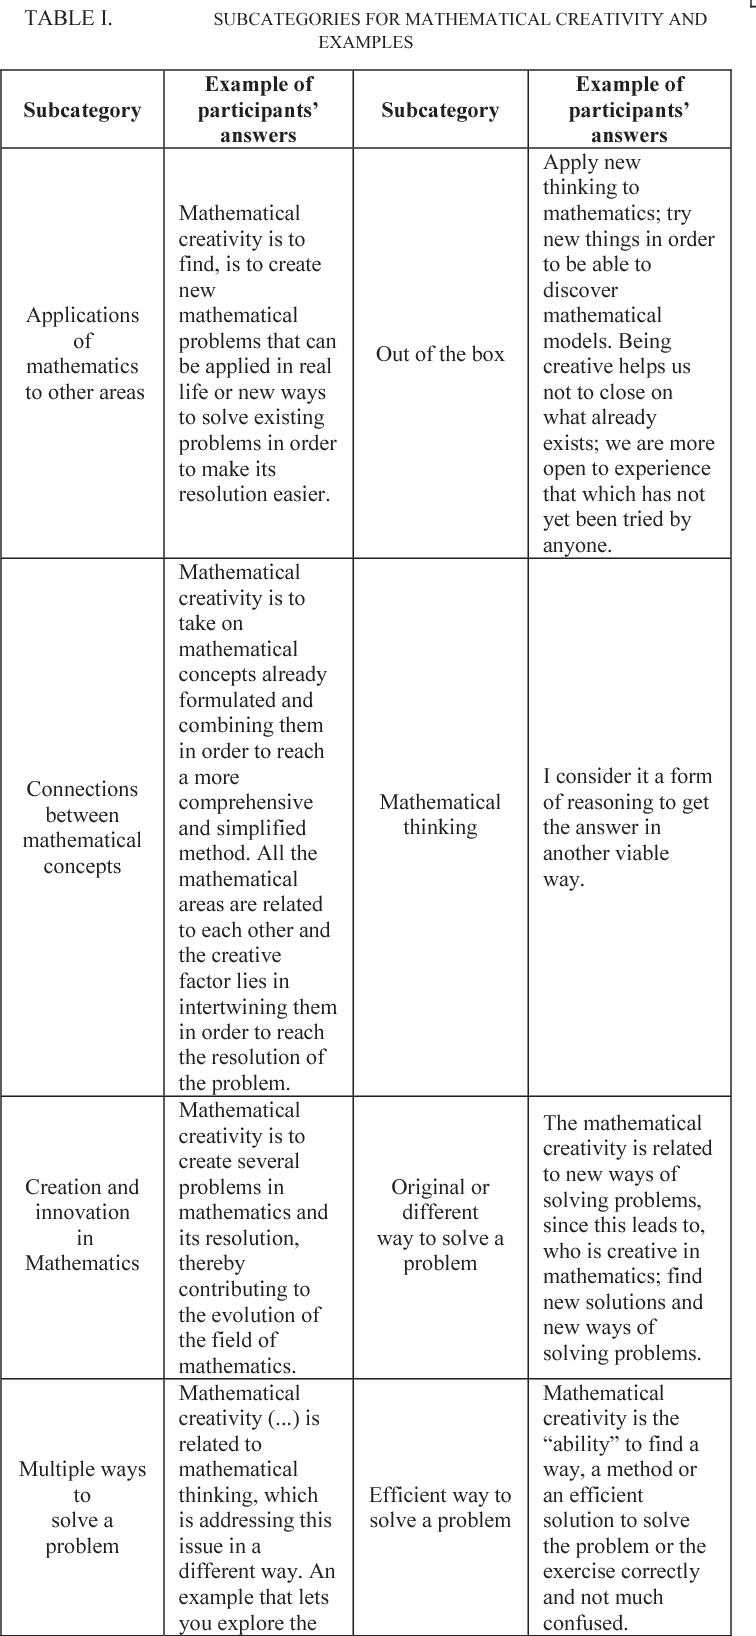 Table I from Mathematical creativity\'s understanding in engineering ...